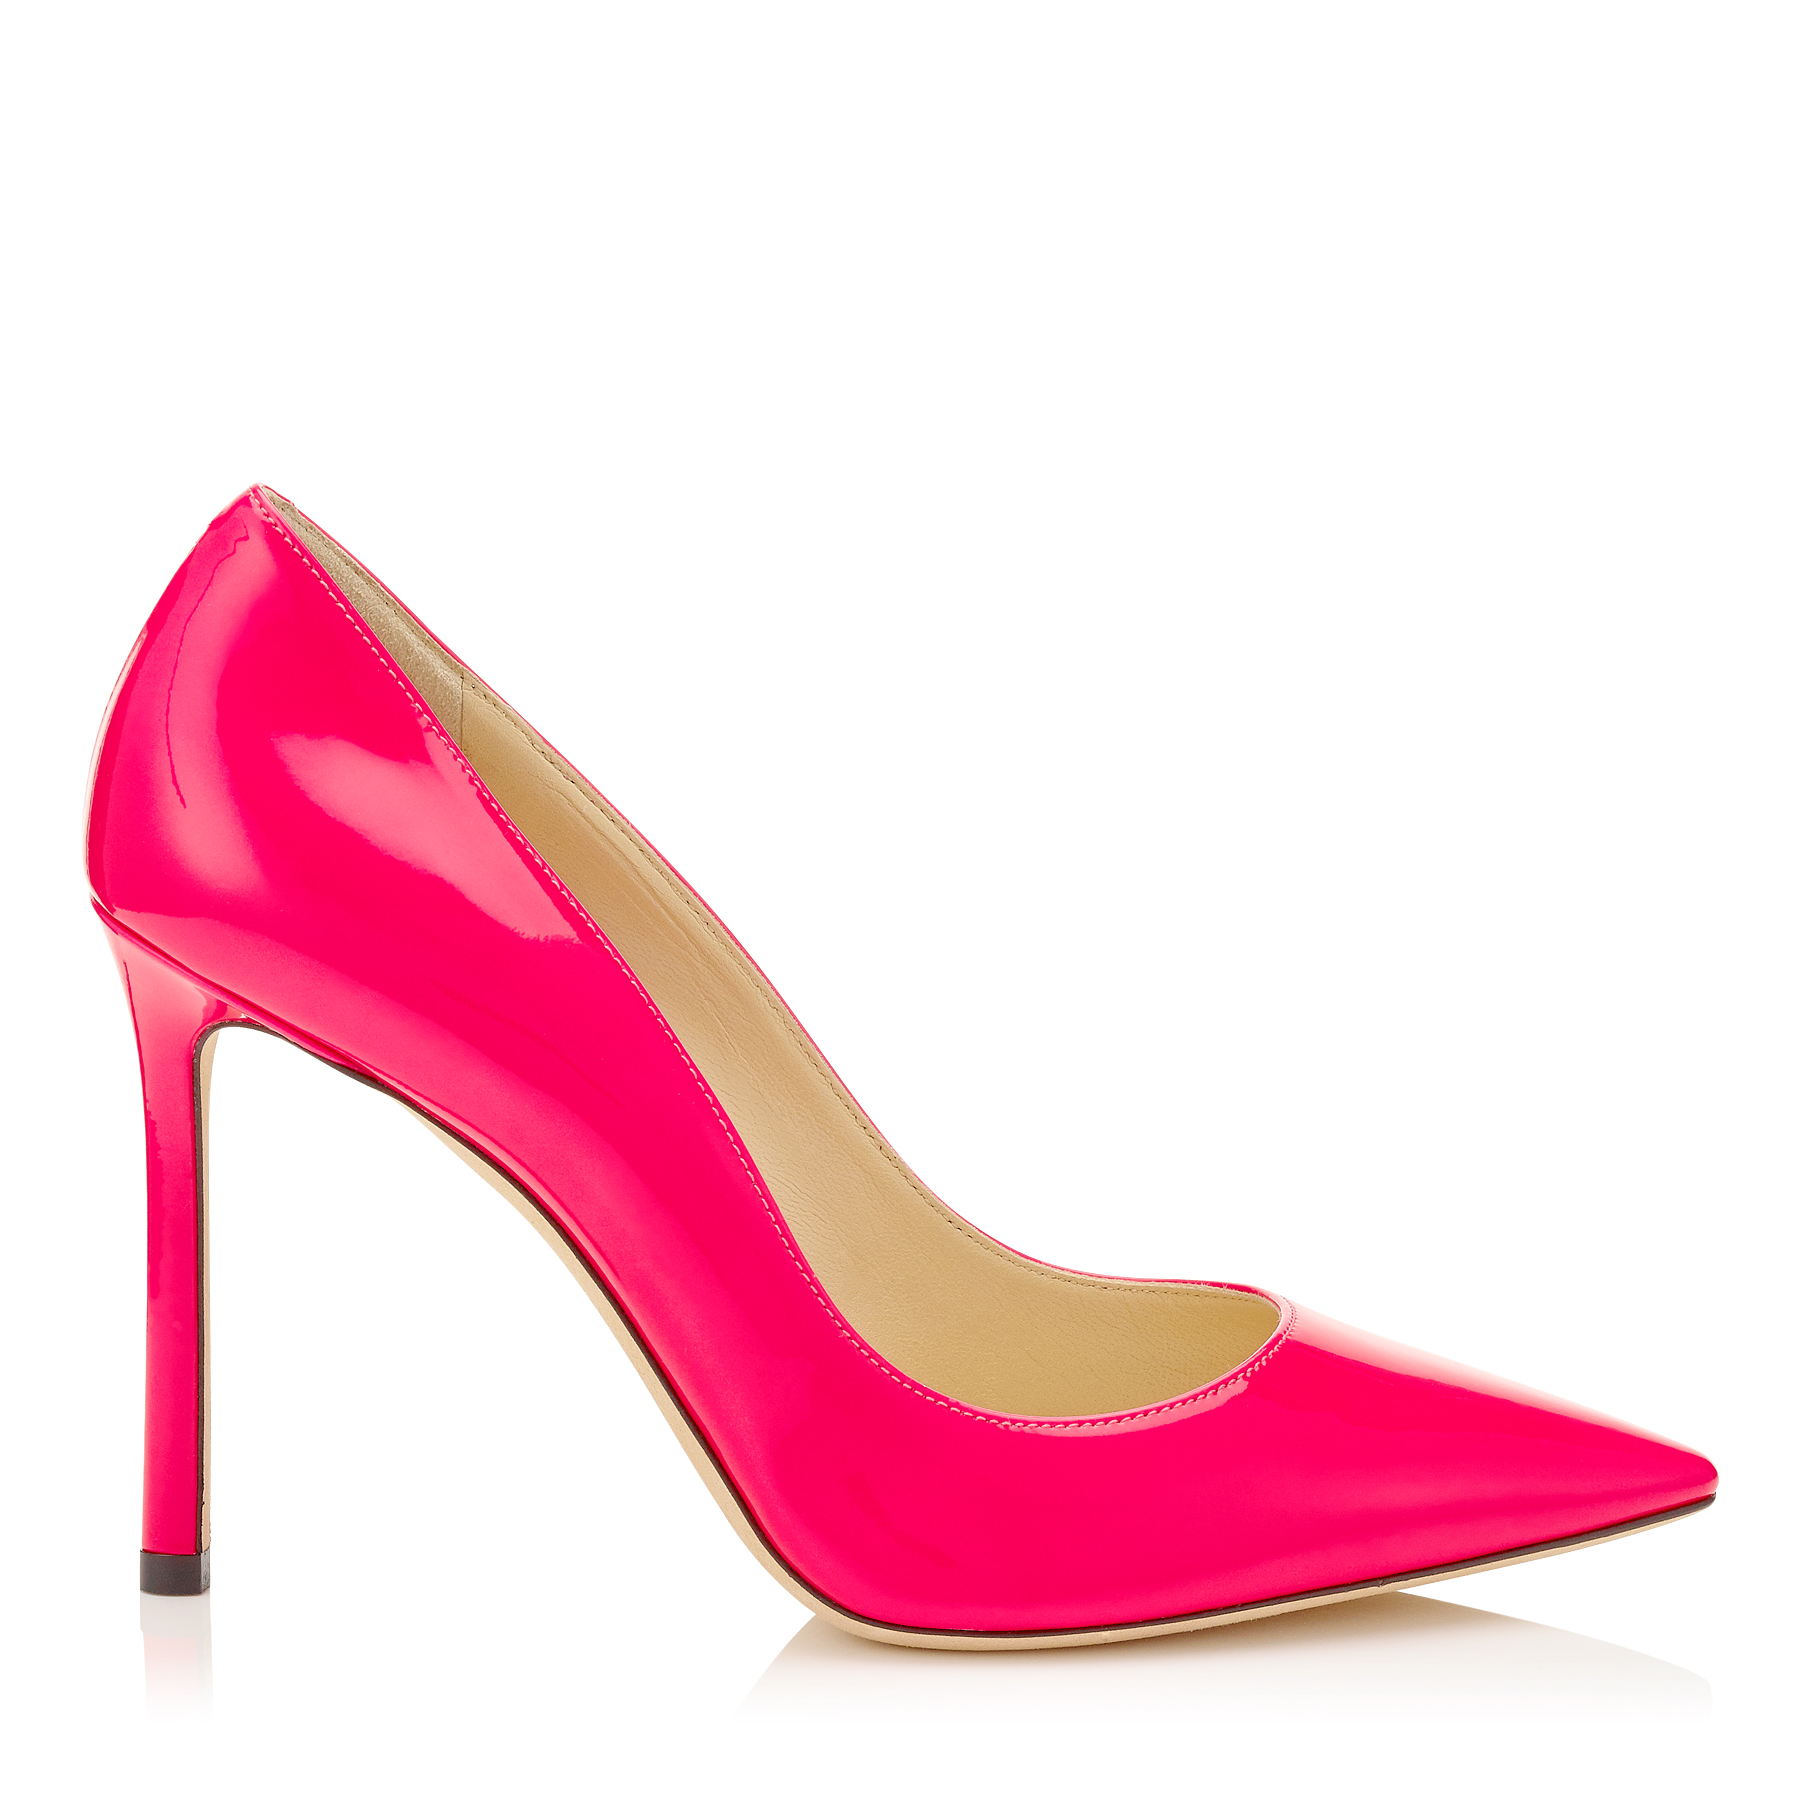 ROMY 100 Shocking Pink Neon Patent Pointy Toe Pumps